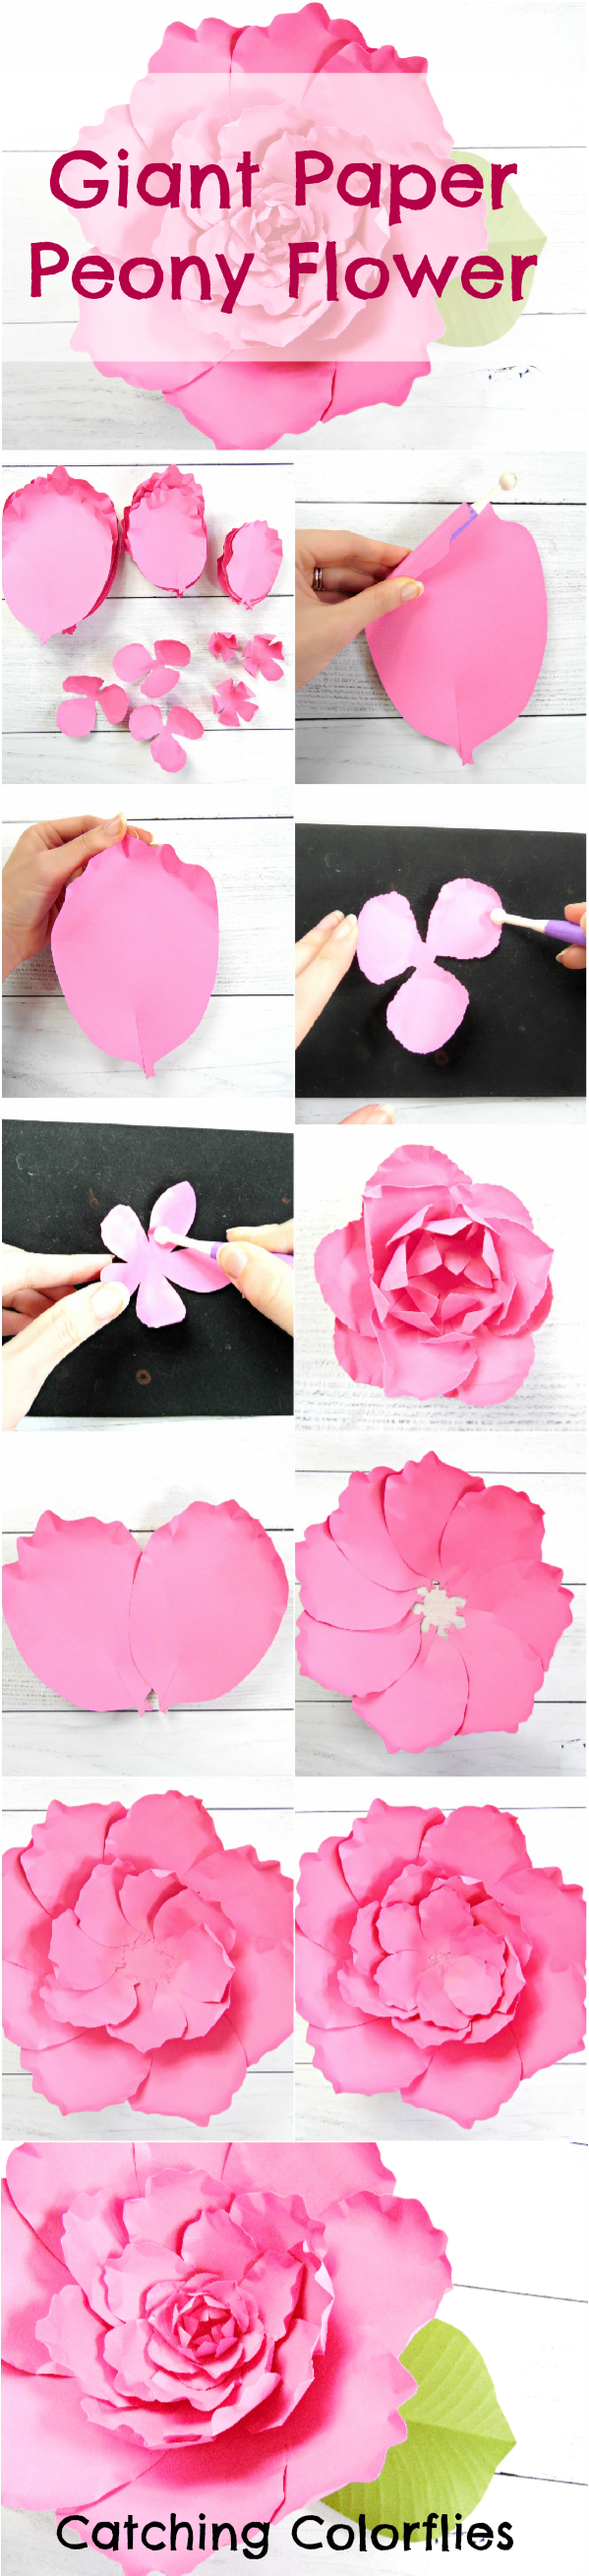 Giant Peony Paper Flower Tutorial Paper Decor Wedding Pinterest